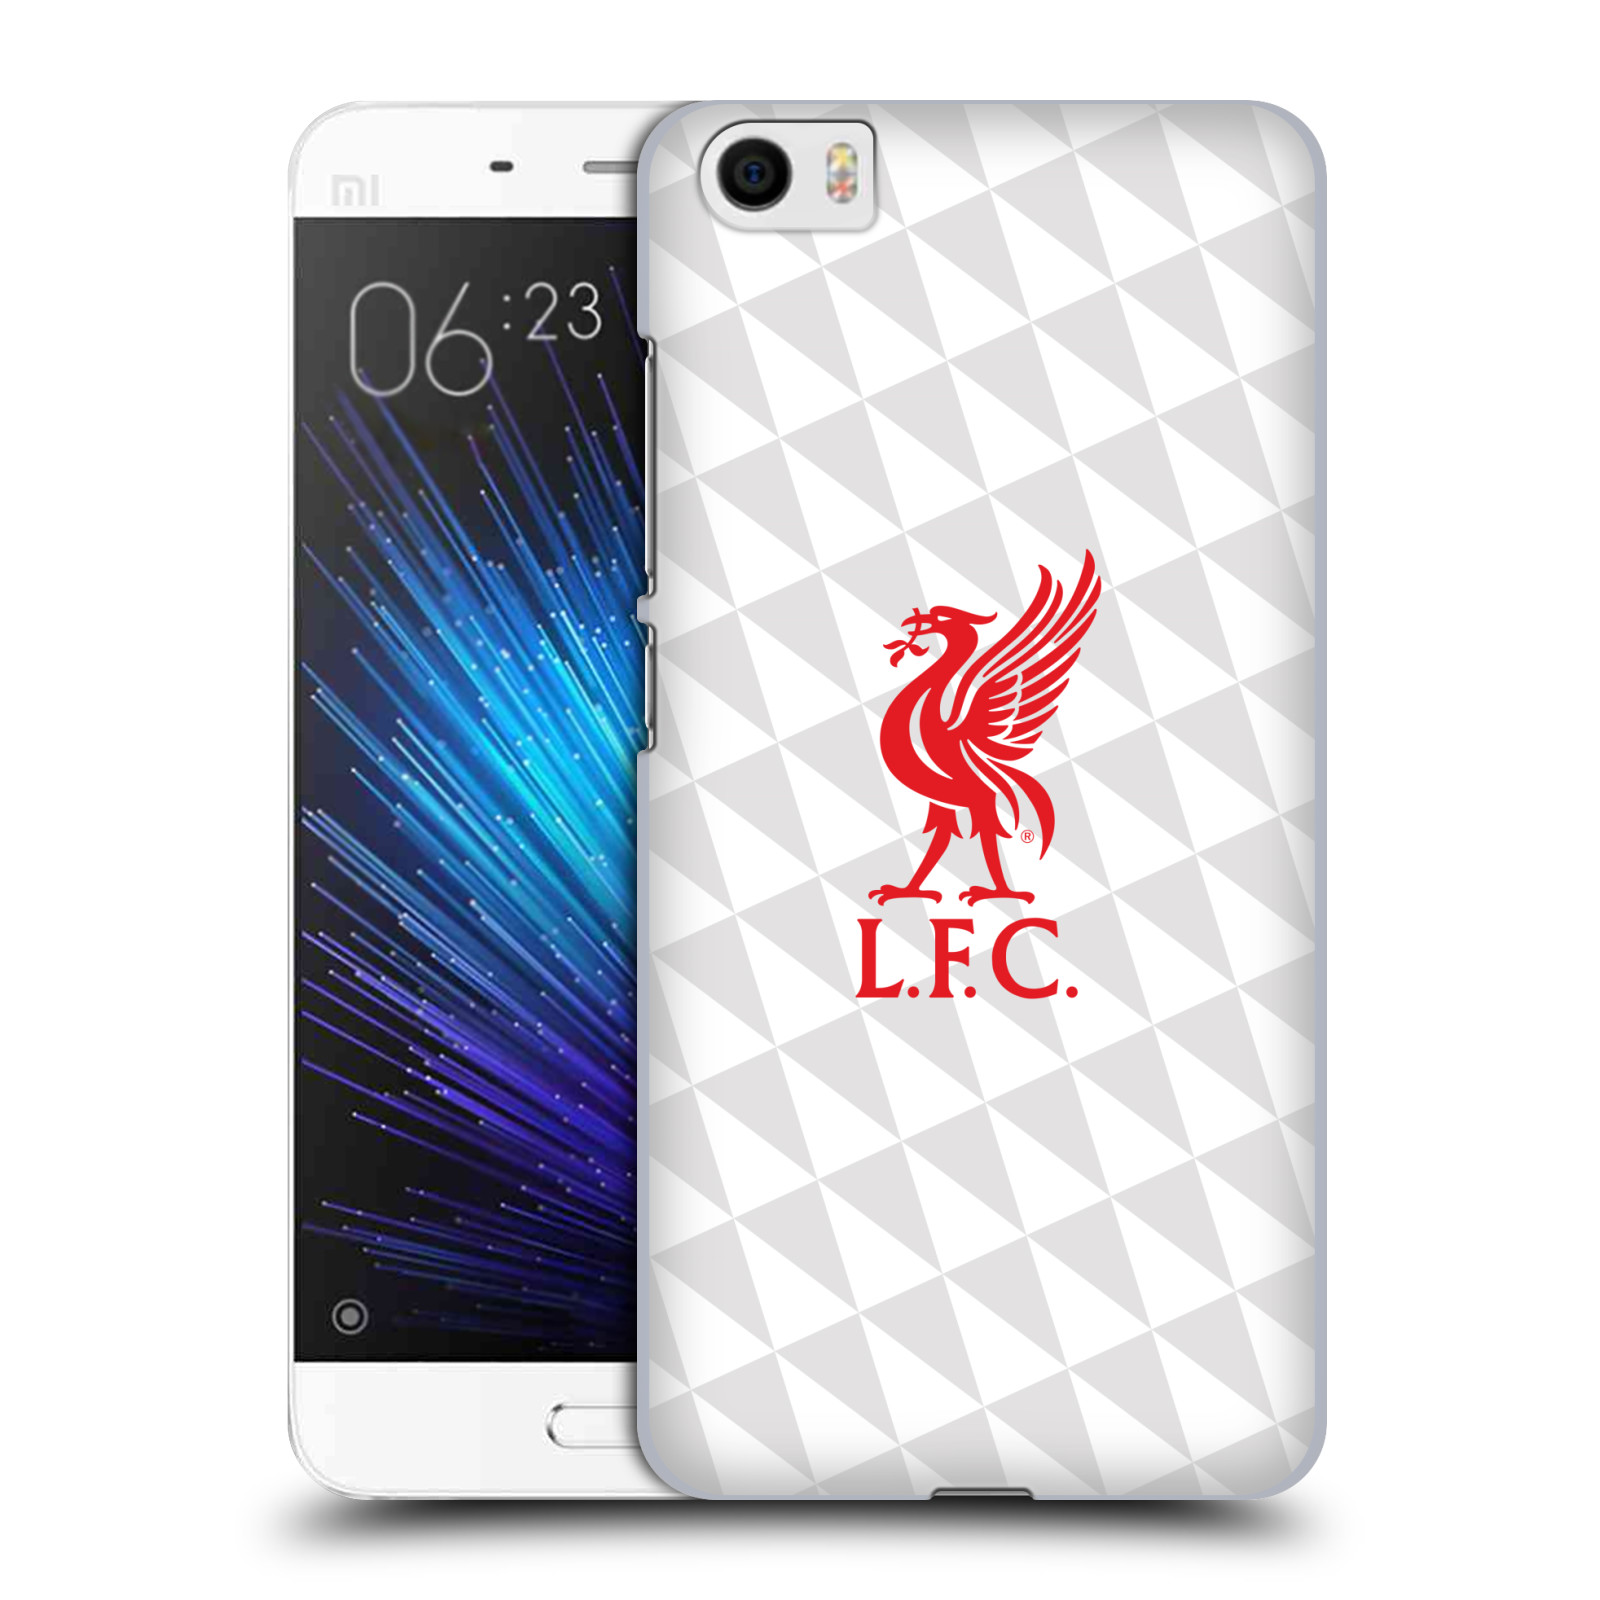 OFFICIAL LIVERPOOL FOOTBALL CLUB LIVER BIRD HARD BACK CASE FOR XIAOMI PHONES